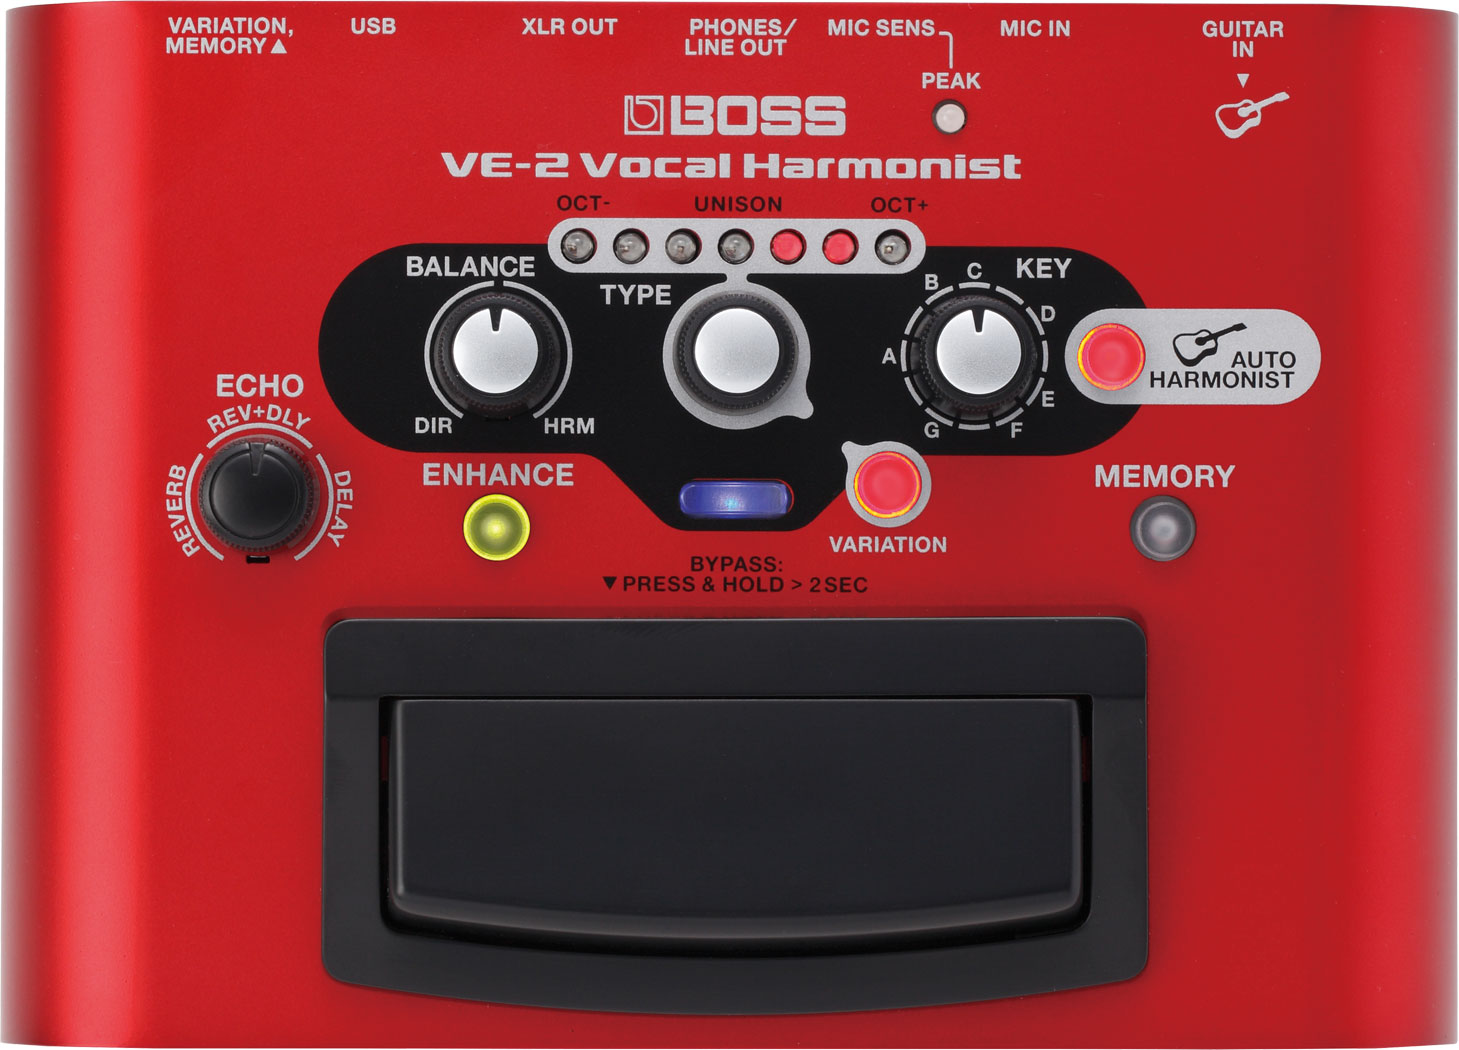 PEDAL BOSS VOCAL VE-2